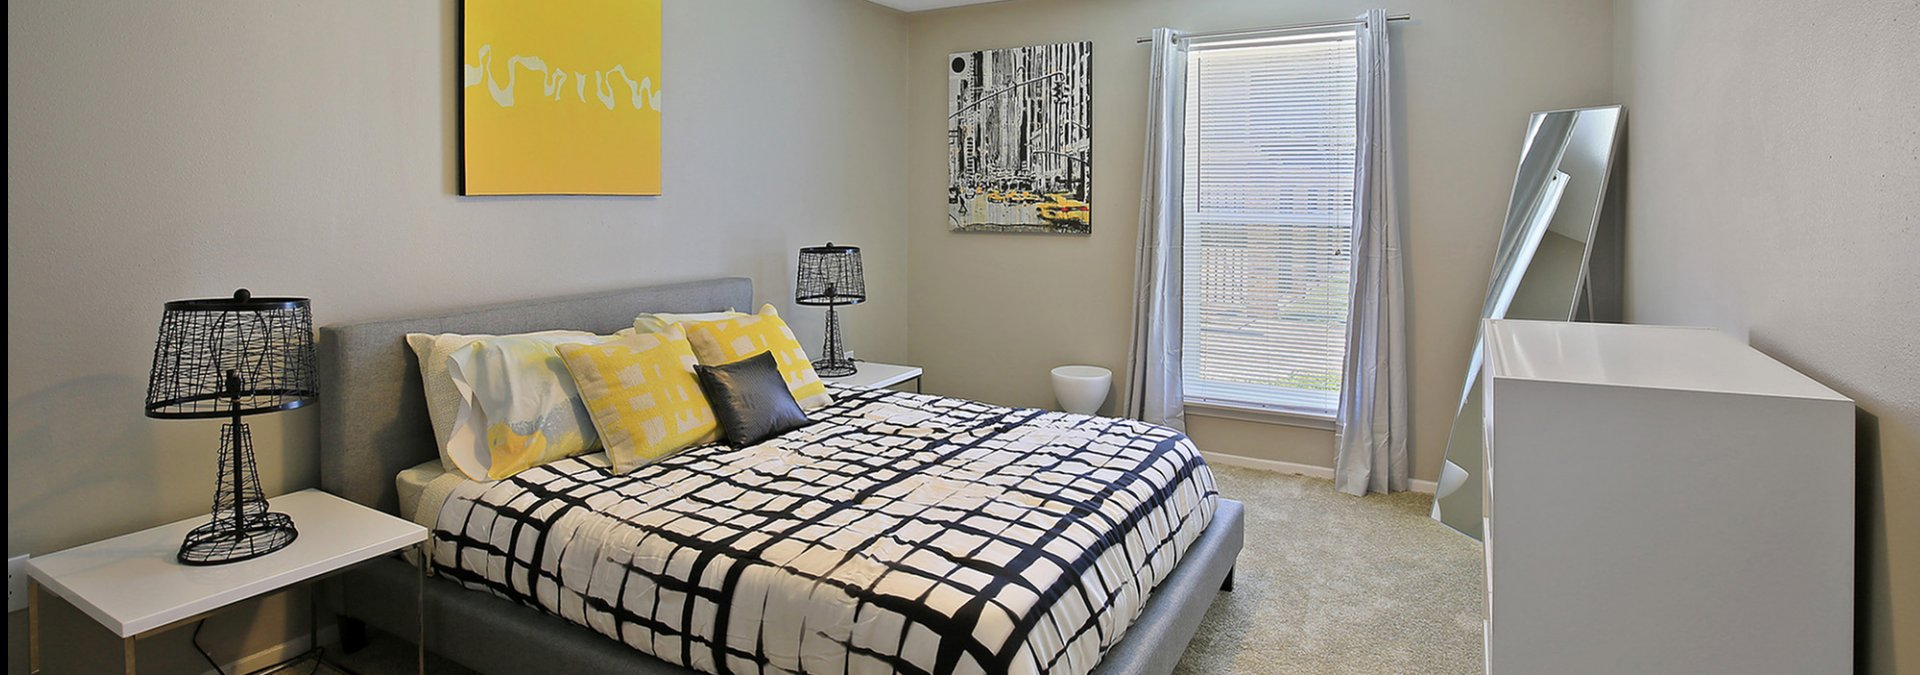 Elegant Bedroom | Apartments For Rent Baton Rouge Near LSU | The Hub at Baton Rouge Apartment Homes